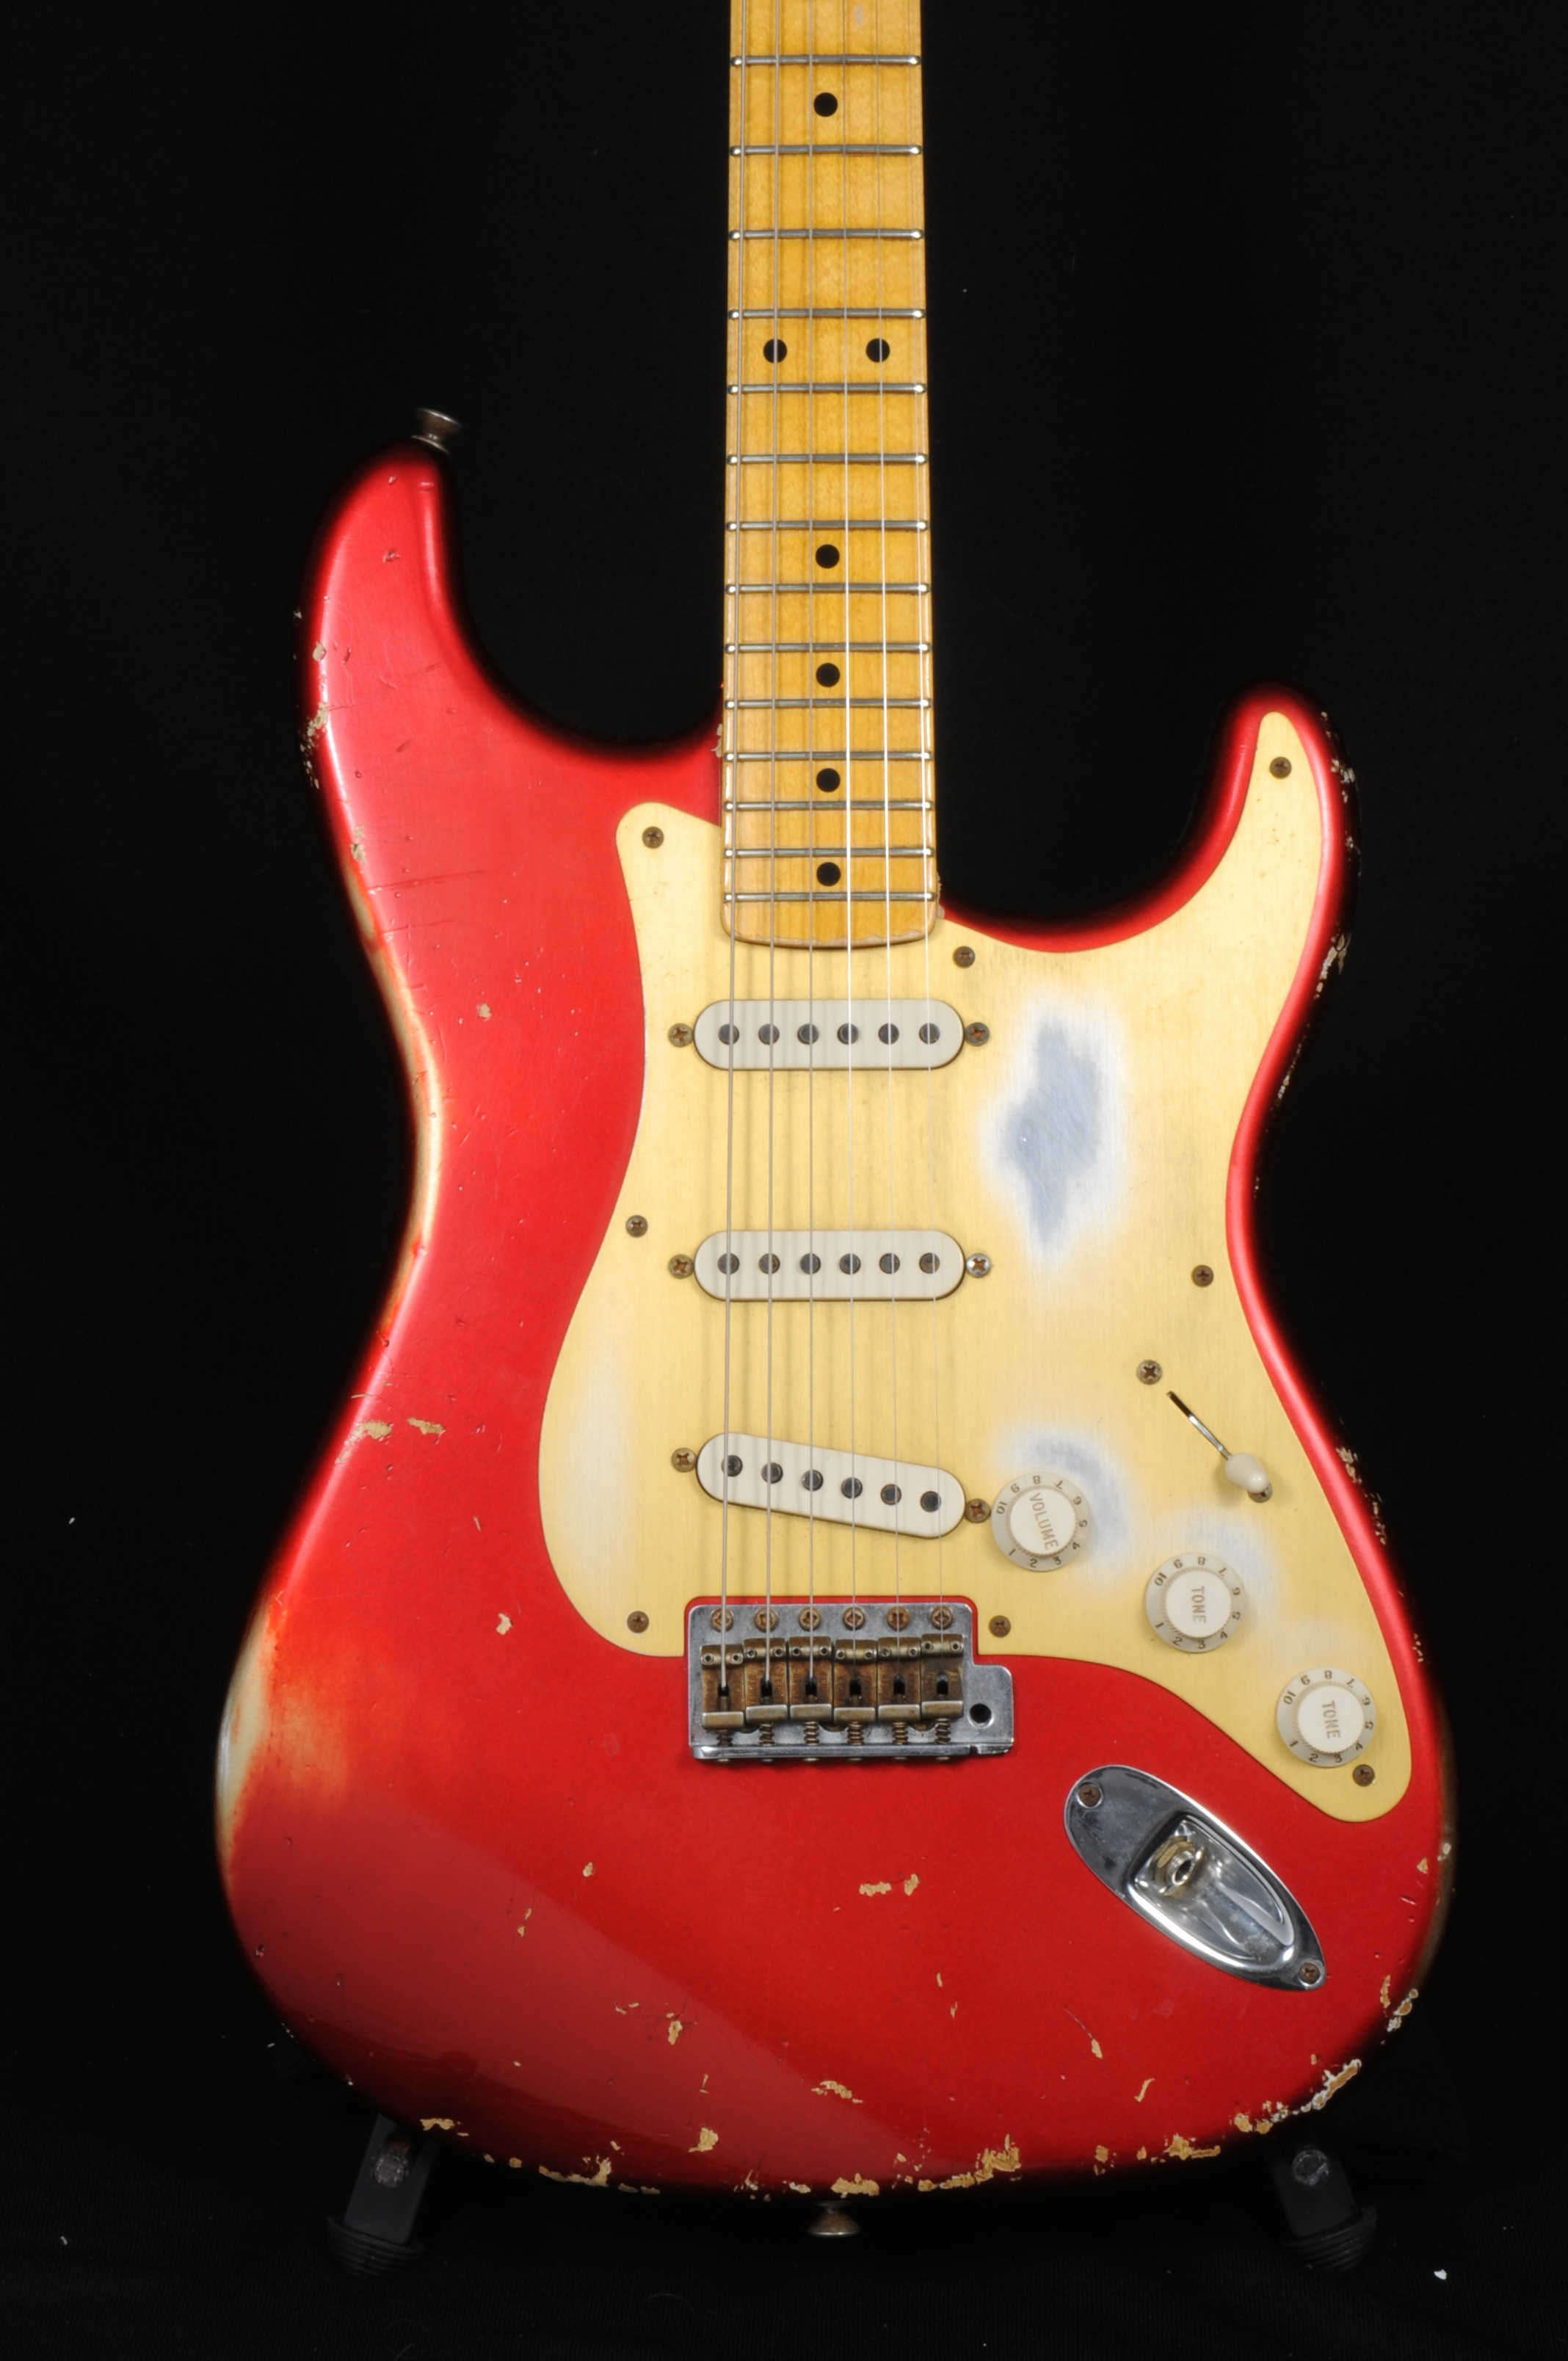 Fender Custom Shop '58 Strat Relic Ltd Ed – Candy Apple Red   1-of-30